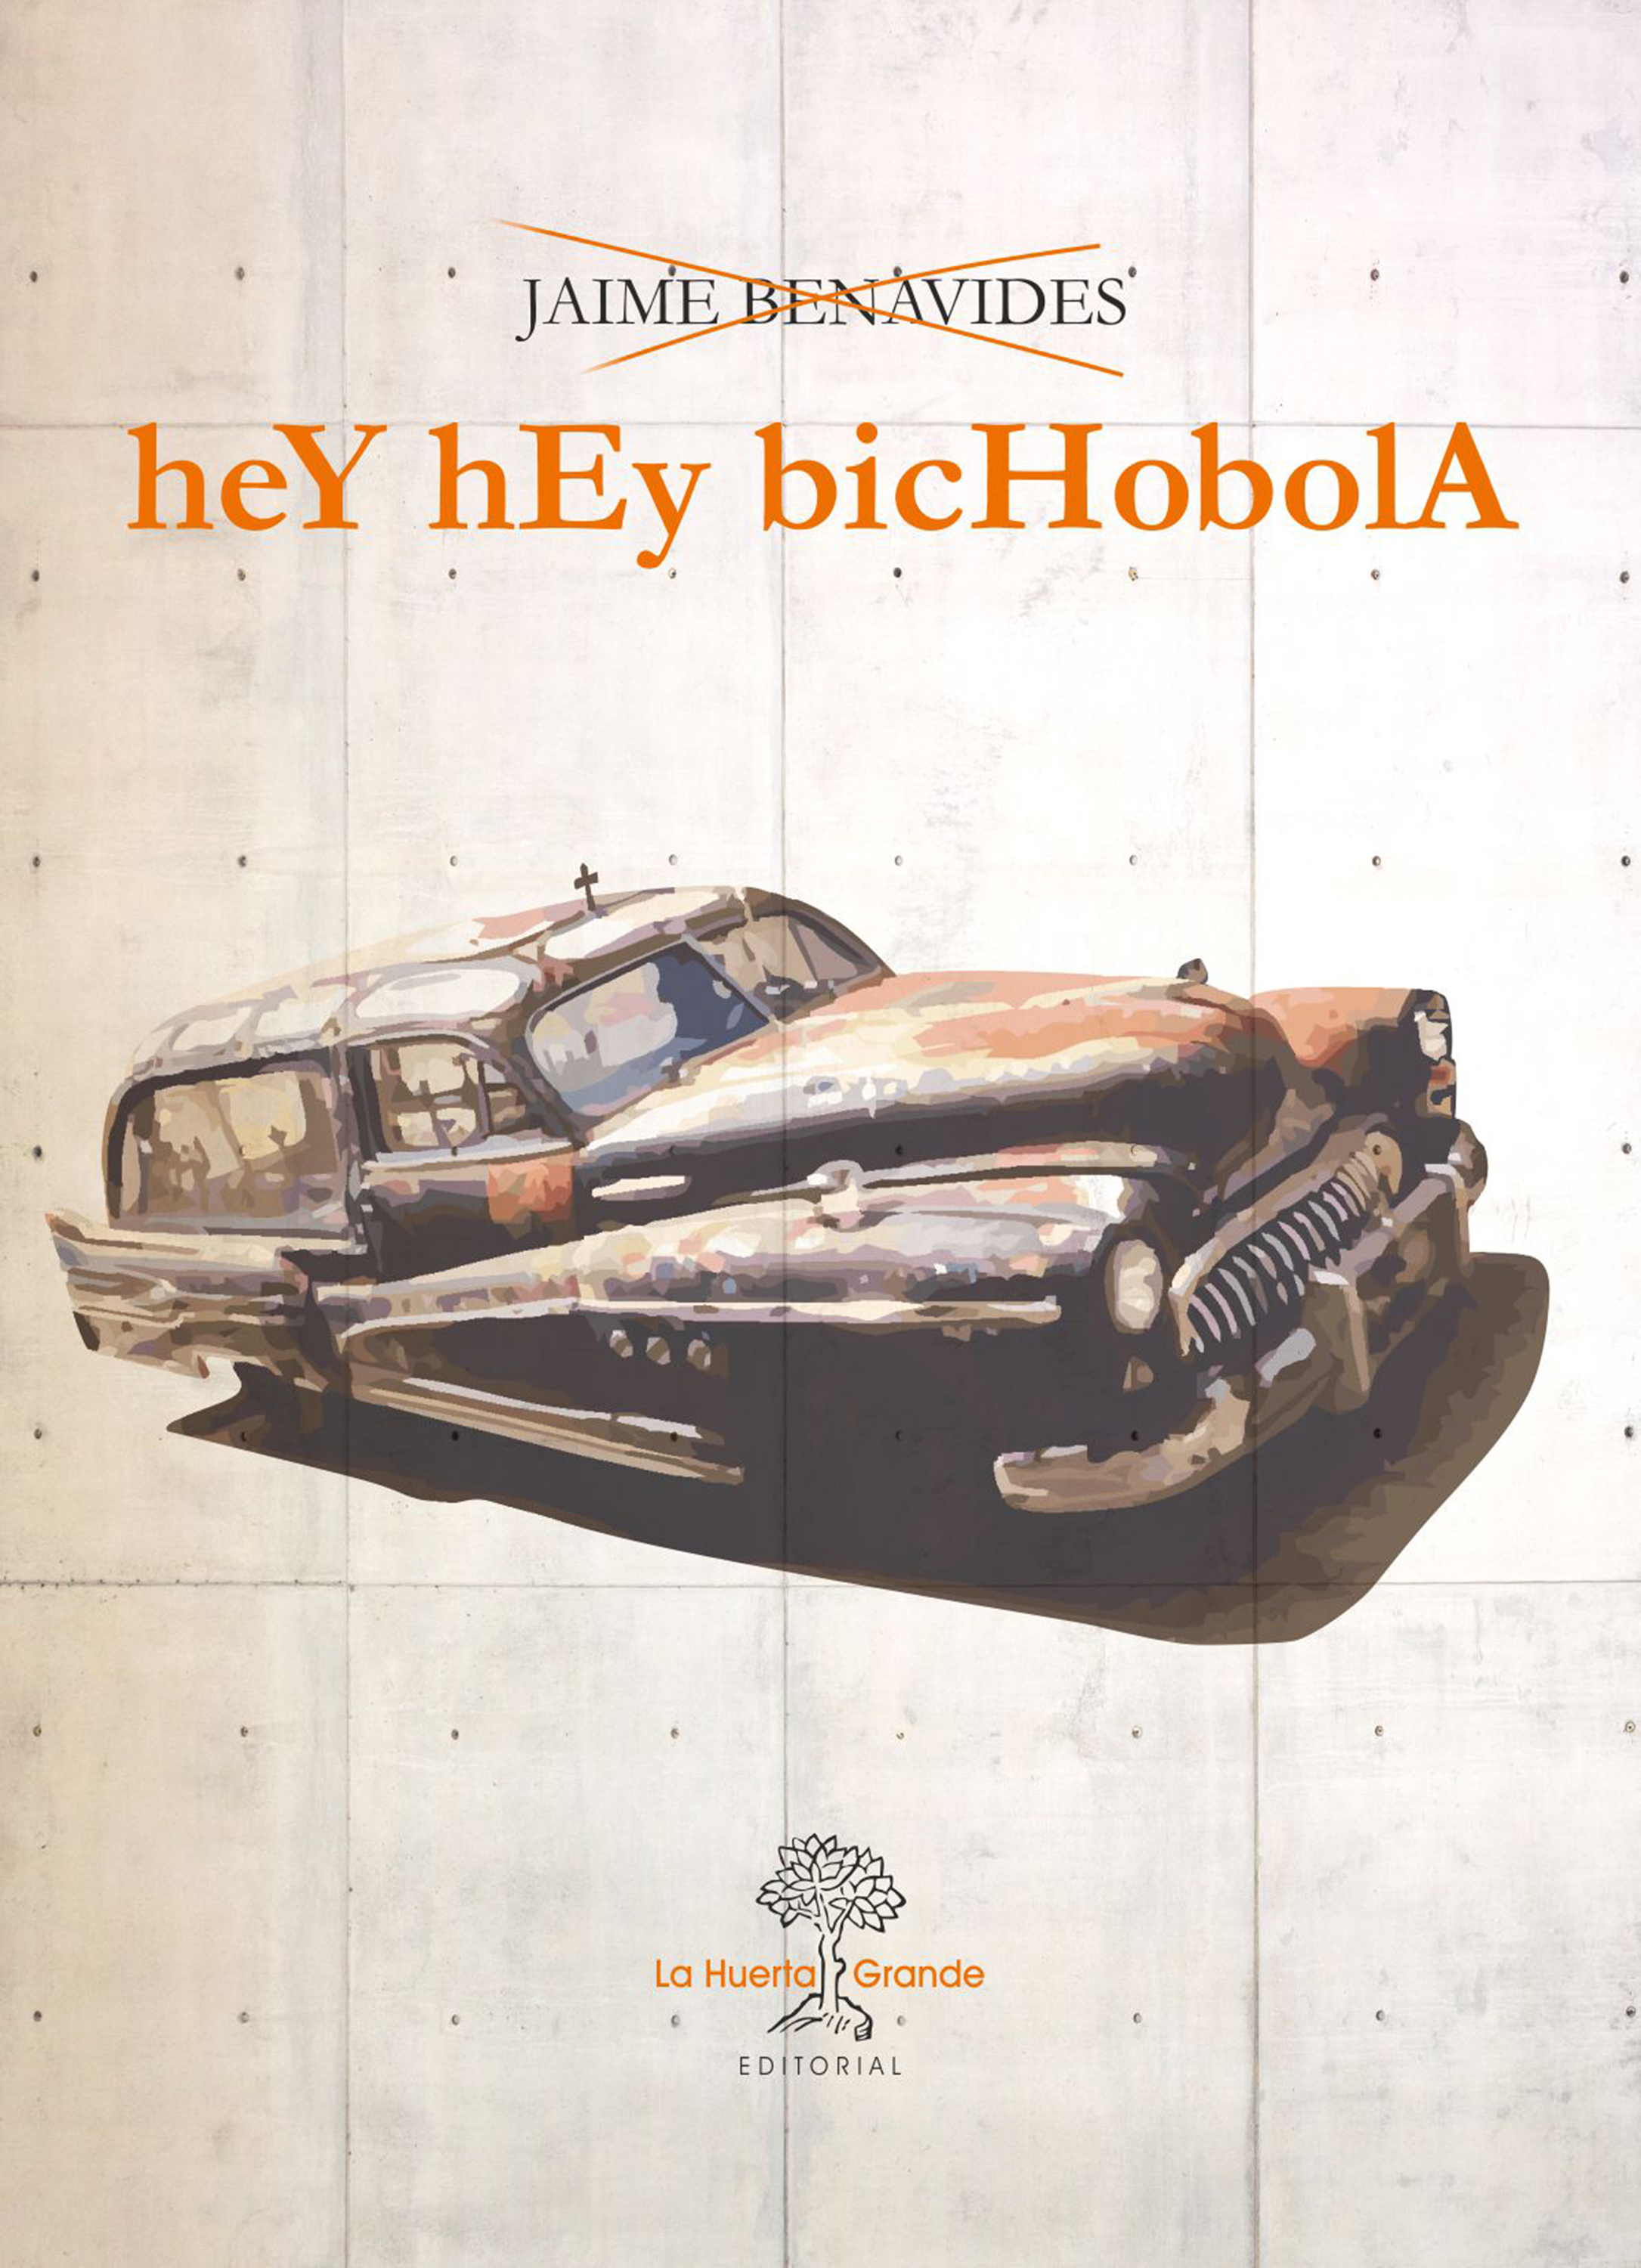 Jaime Benavides Hey Hey Bichobola босоножки hey beautiful shoe store 603 2015